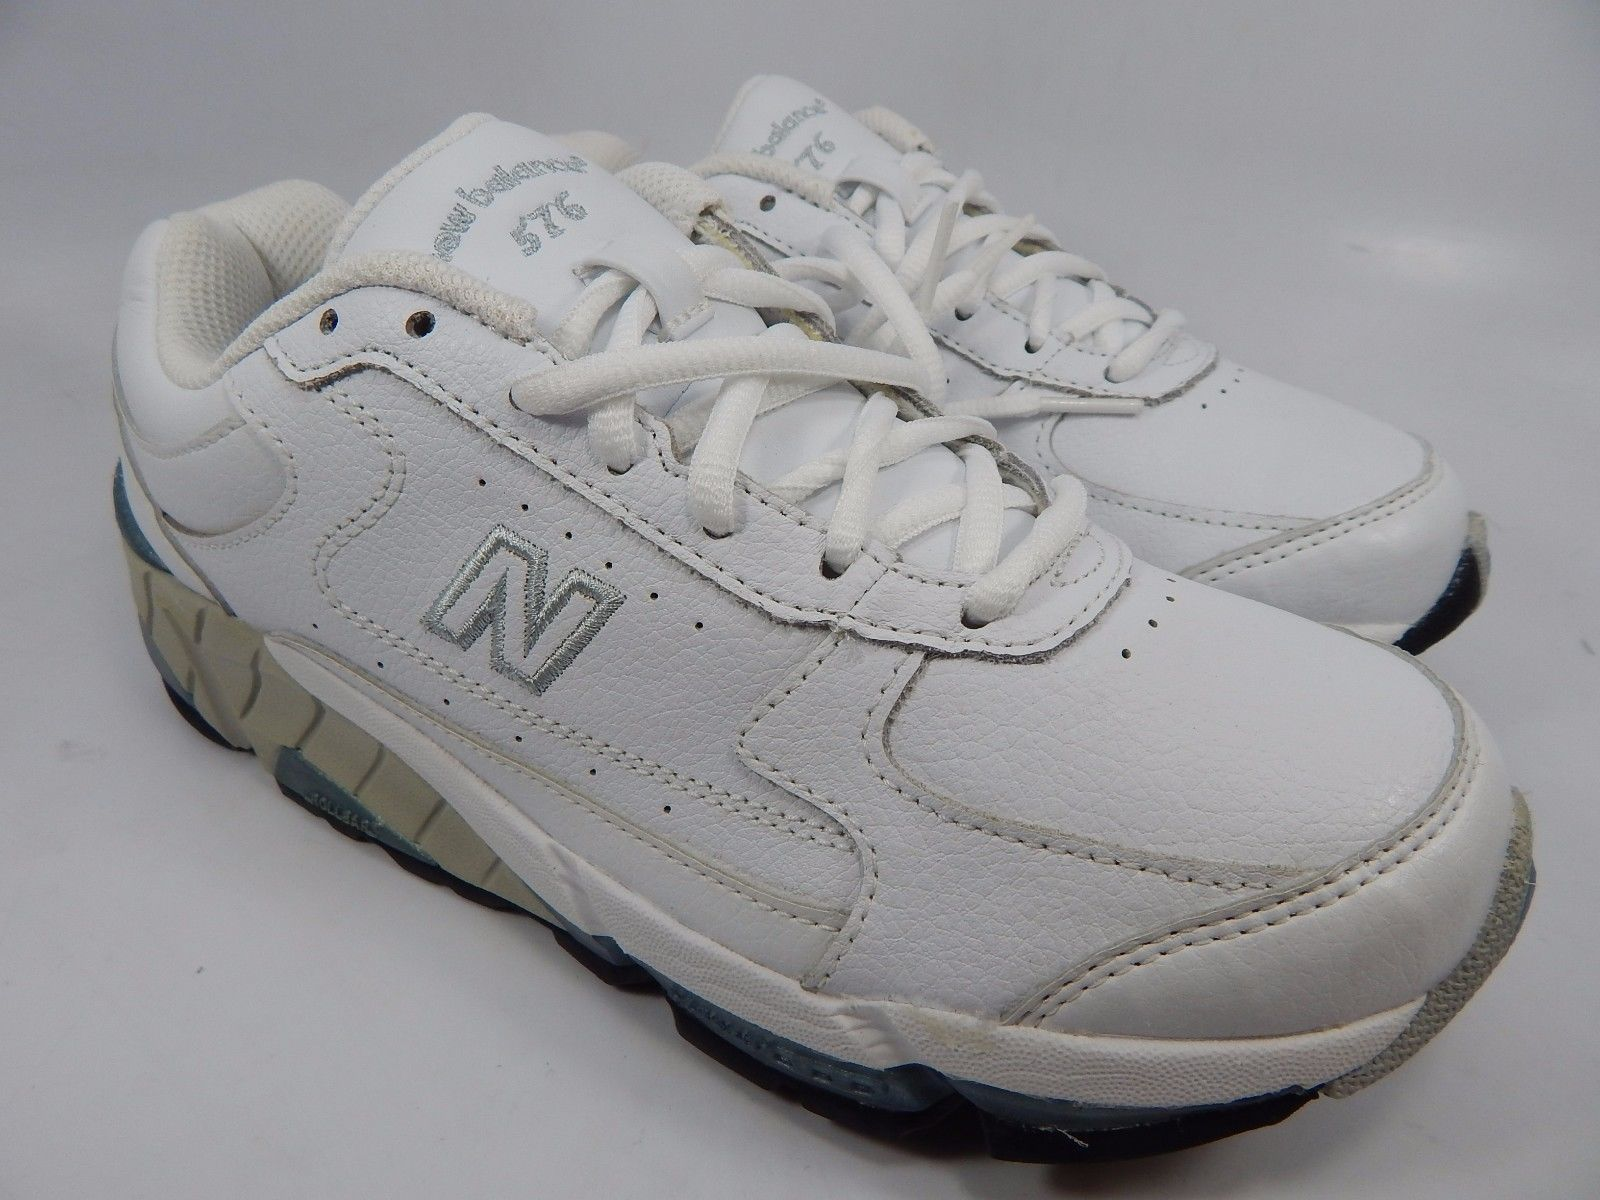 New Balance 576 Women's Walking Shoes Size US 6.5 M (B) EU 37 White WW576WT